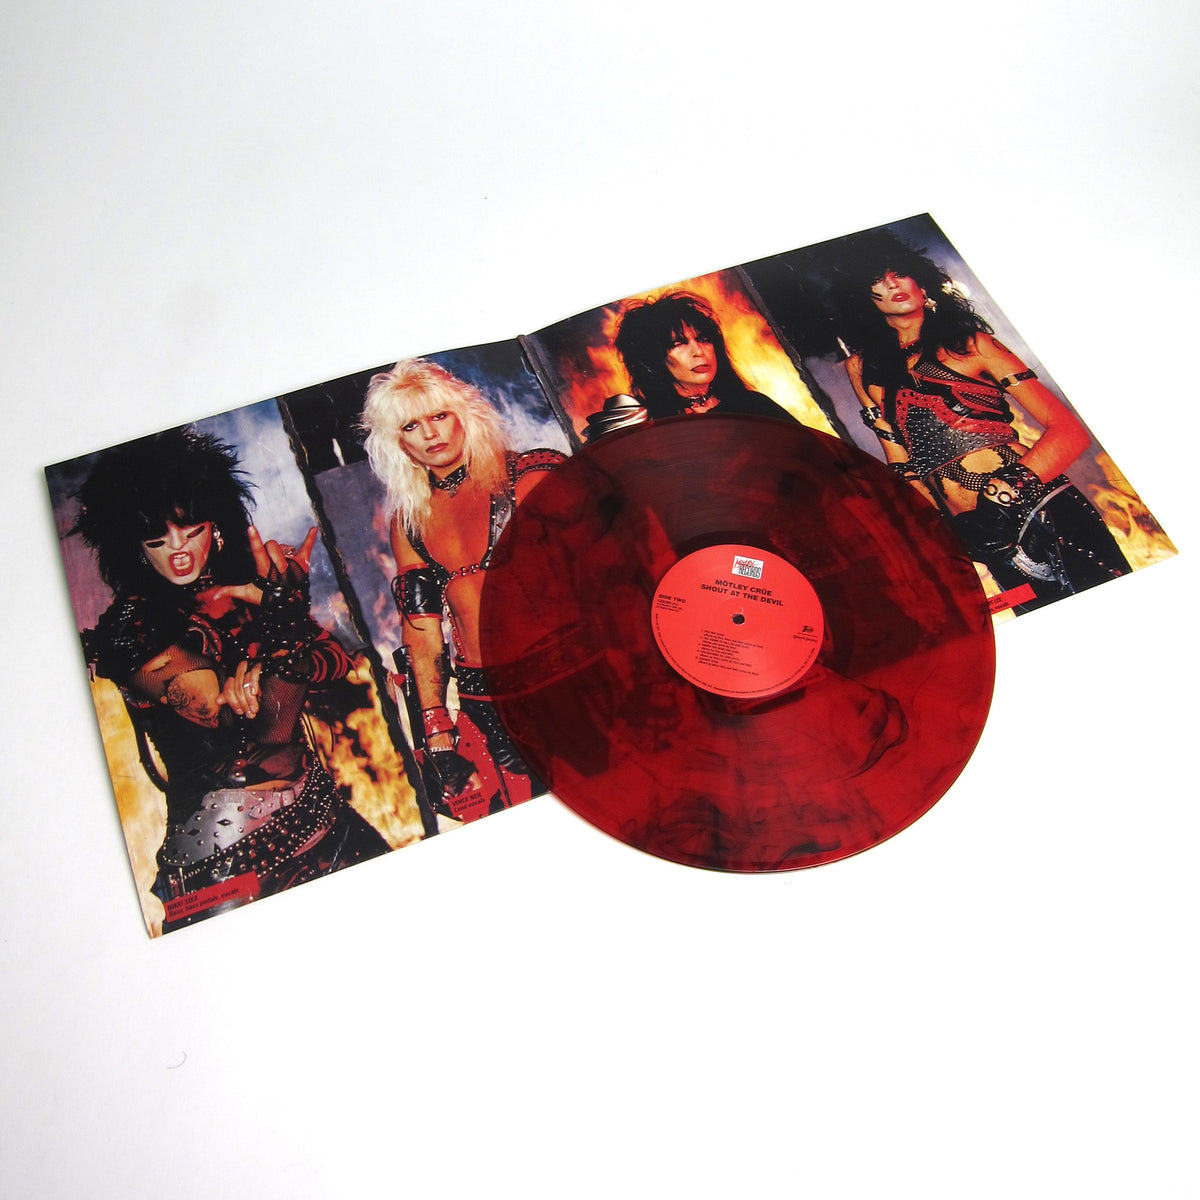 Mötley Crüe: Colored Vinyl LP Album Pack (Too Fast For Love, Shout At The Devil, Theatre Of Pain, Girls Girls Girls, Dr. Feelgood)